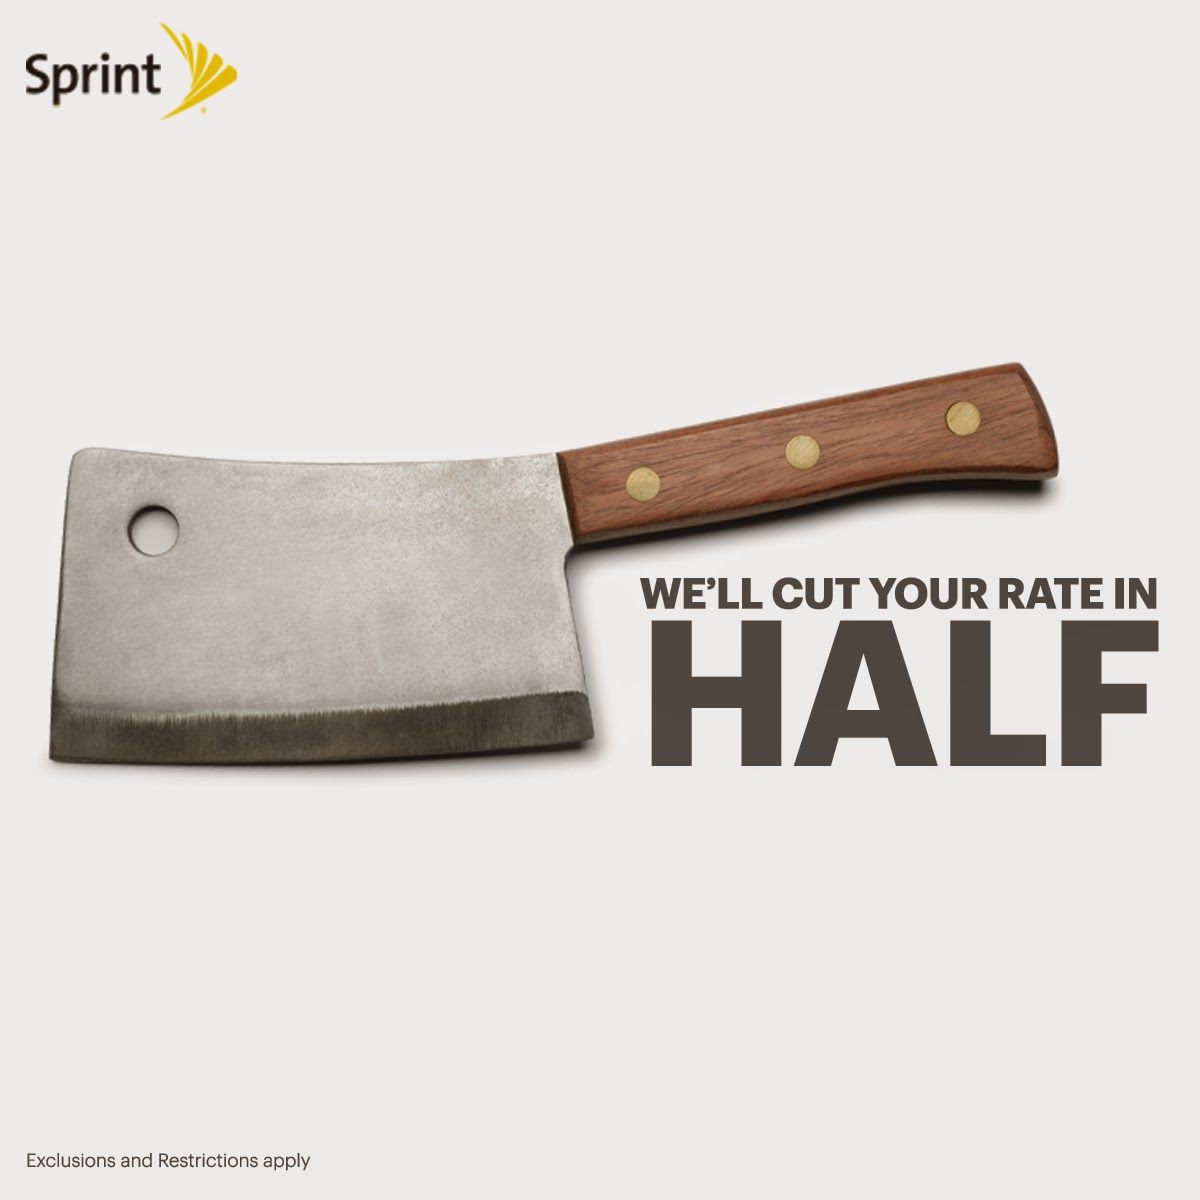 You ain't seen nothing yet. Bring us your Verizon or ATT bill and we'll #CutYourBill in half http://sprint.co/12kKrb6